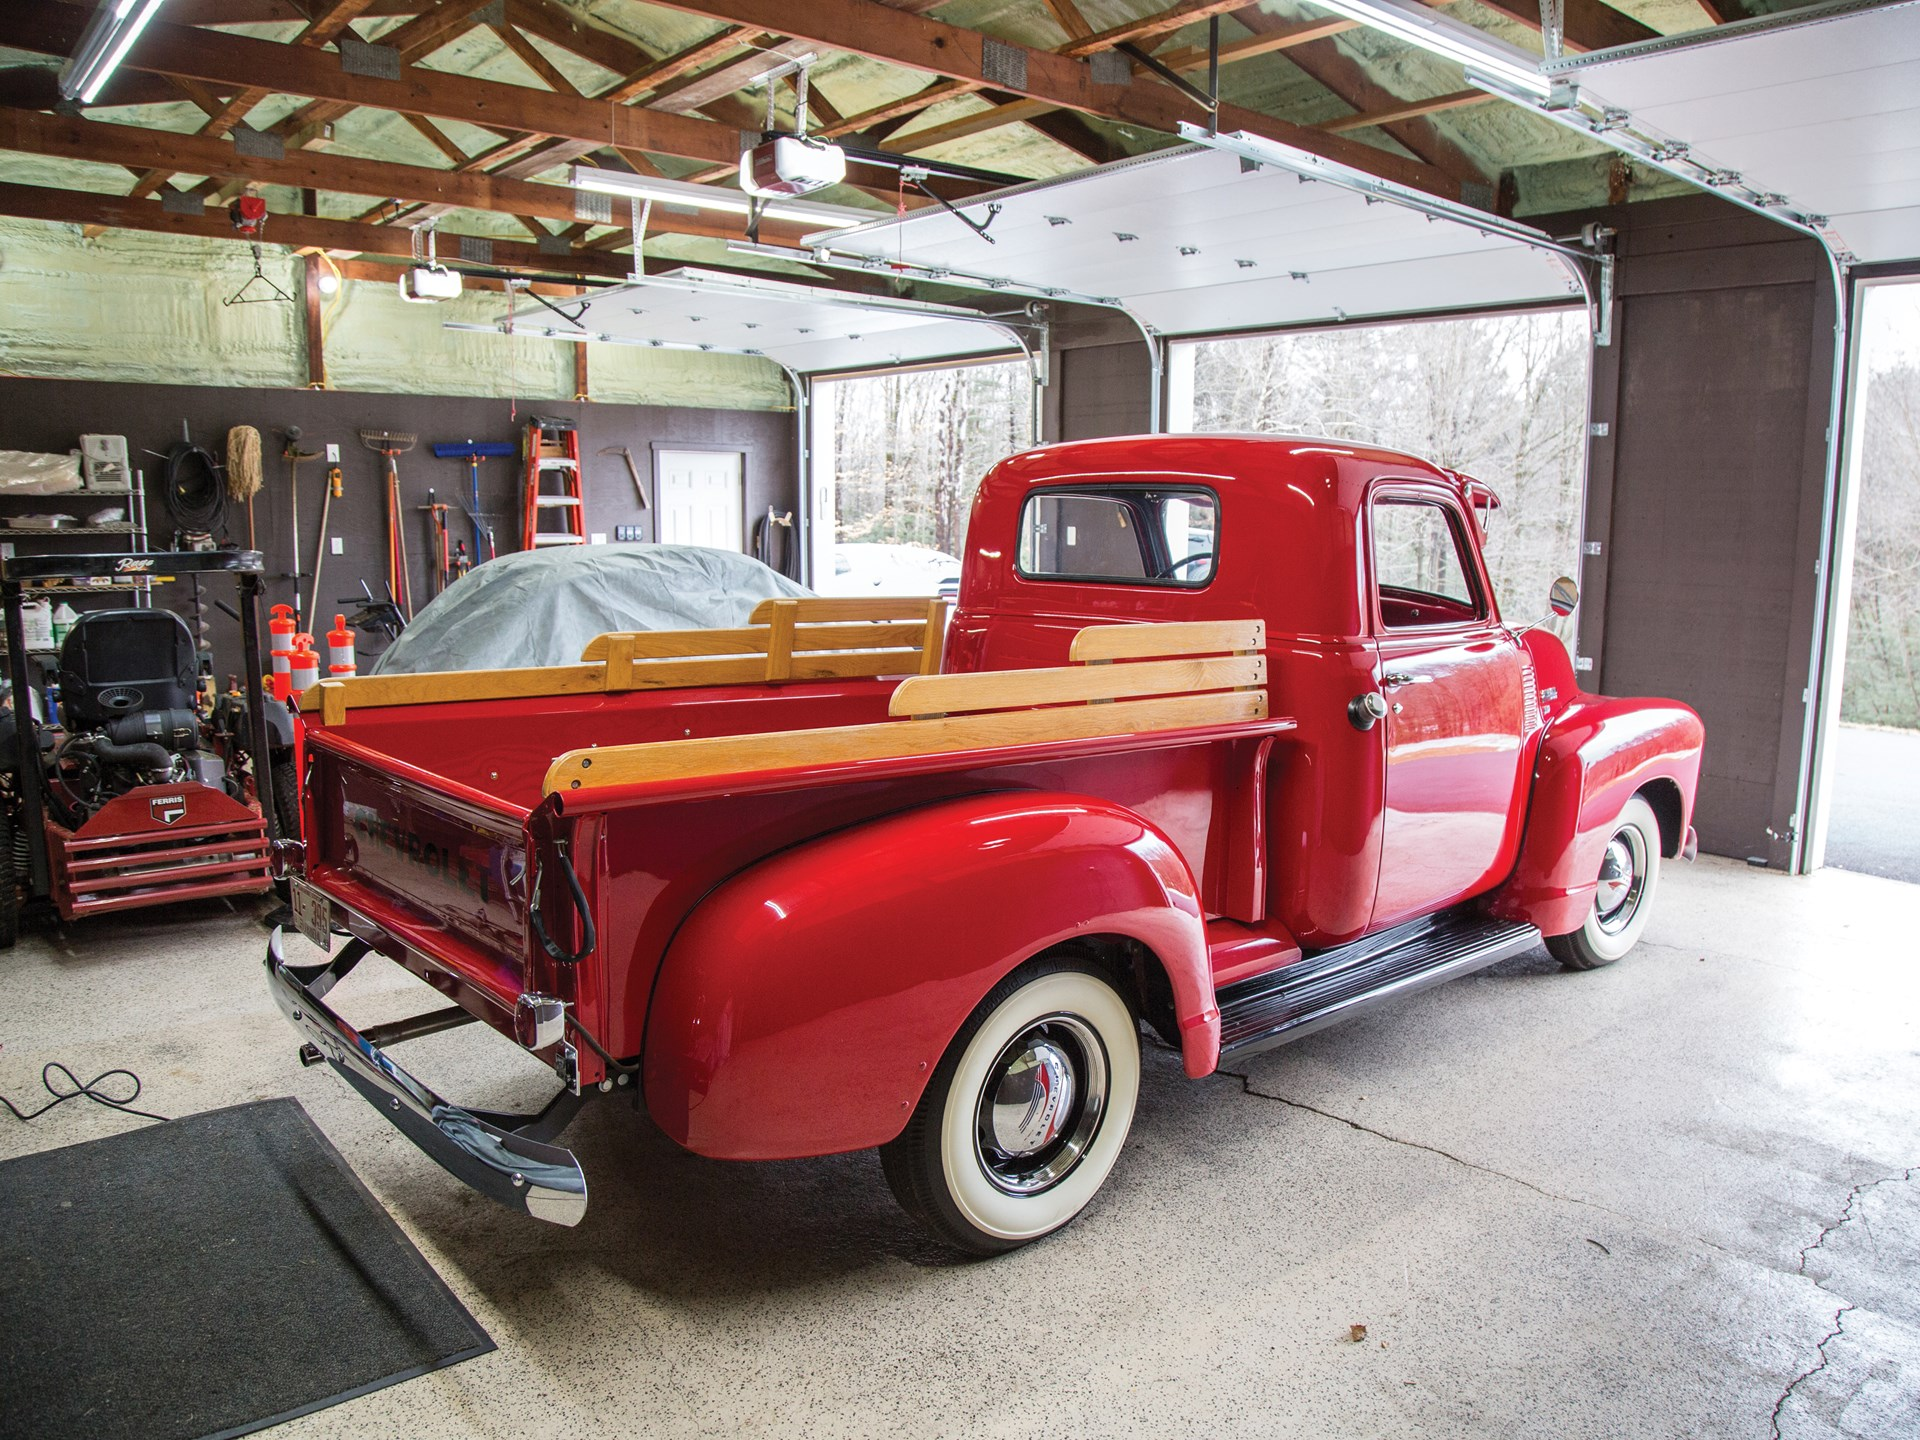 Chevrolet 1949 Truck All About Chevy Vin Decoder Rm Sotheby S 3100 Pickup Fort Lauderdale 2018